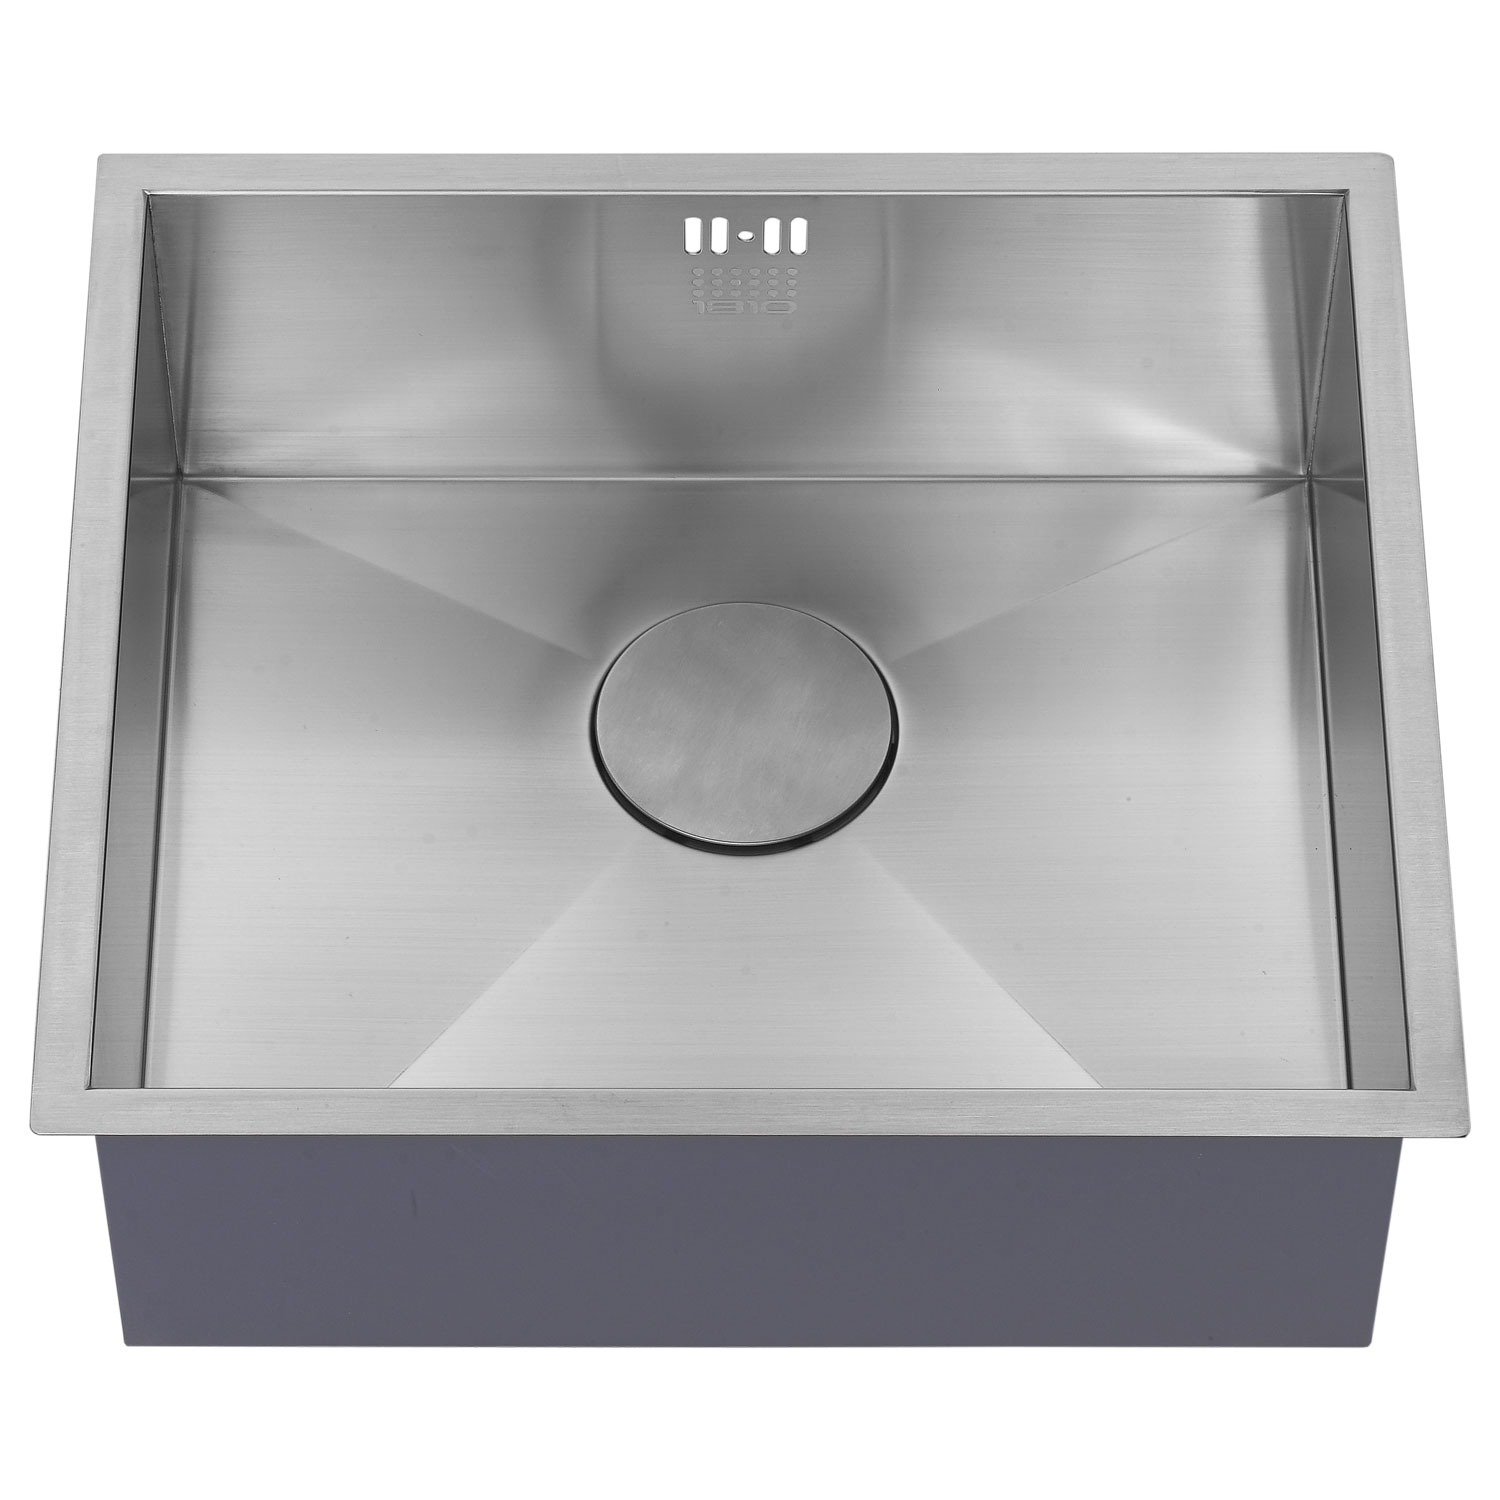 The 1810 Company Zenuno 450U 1.0 Bowl Kitchen Sink - Stainless Steel